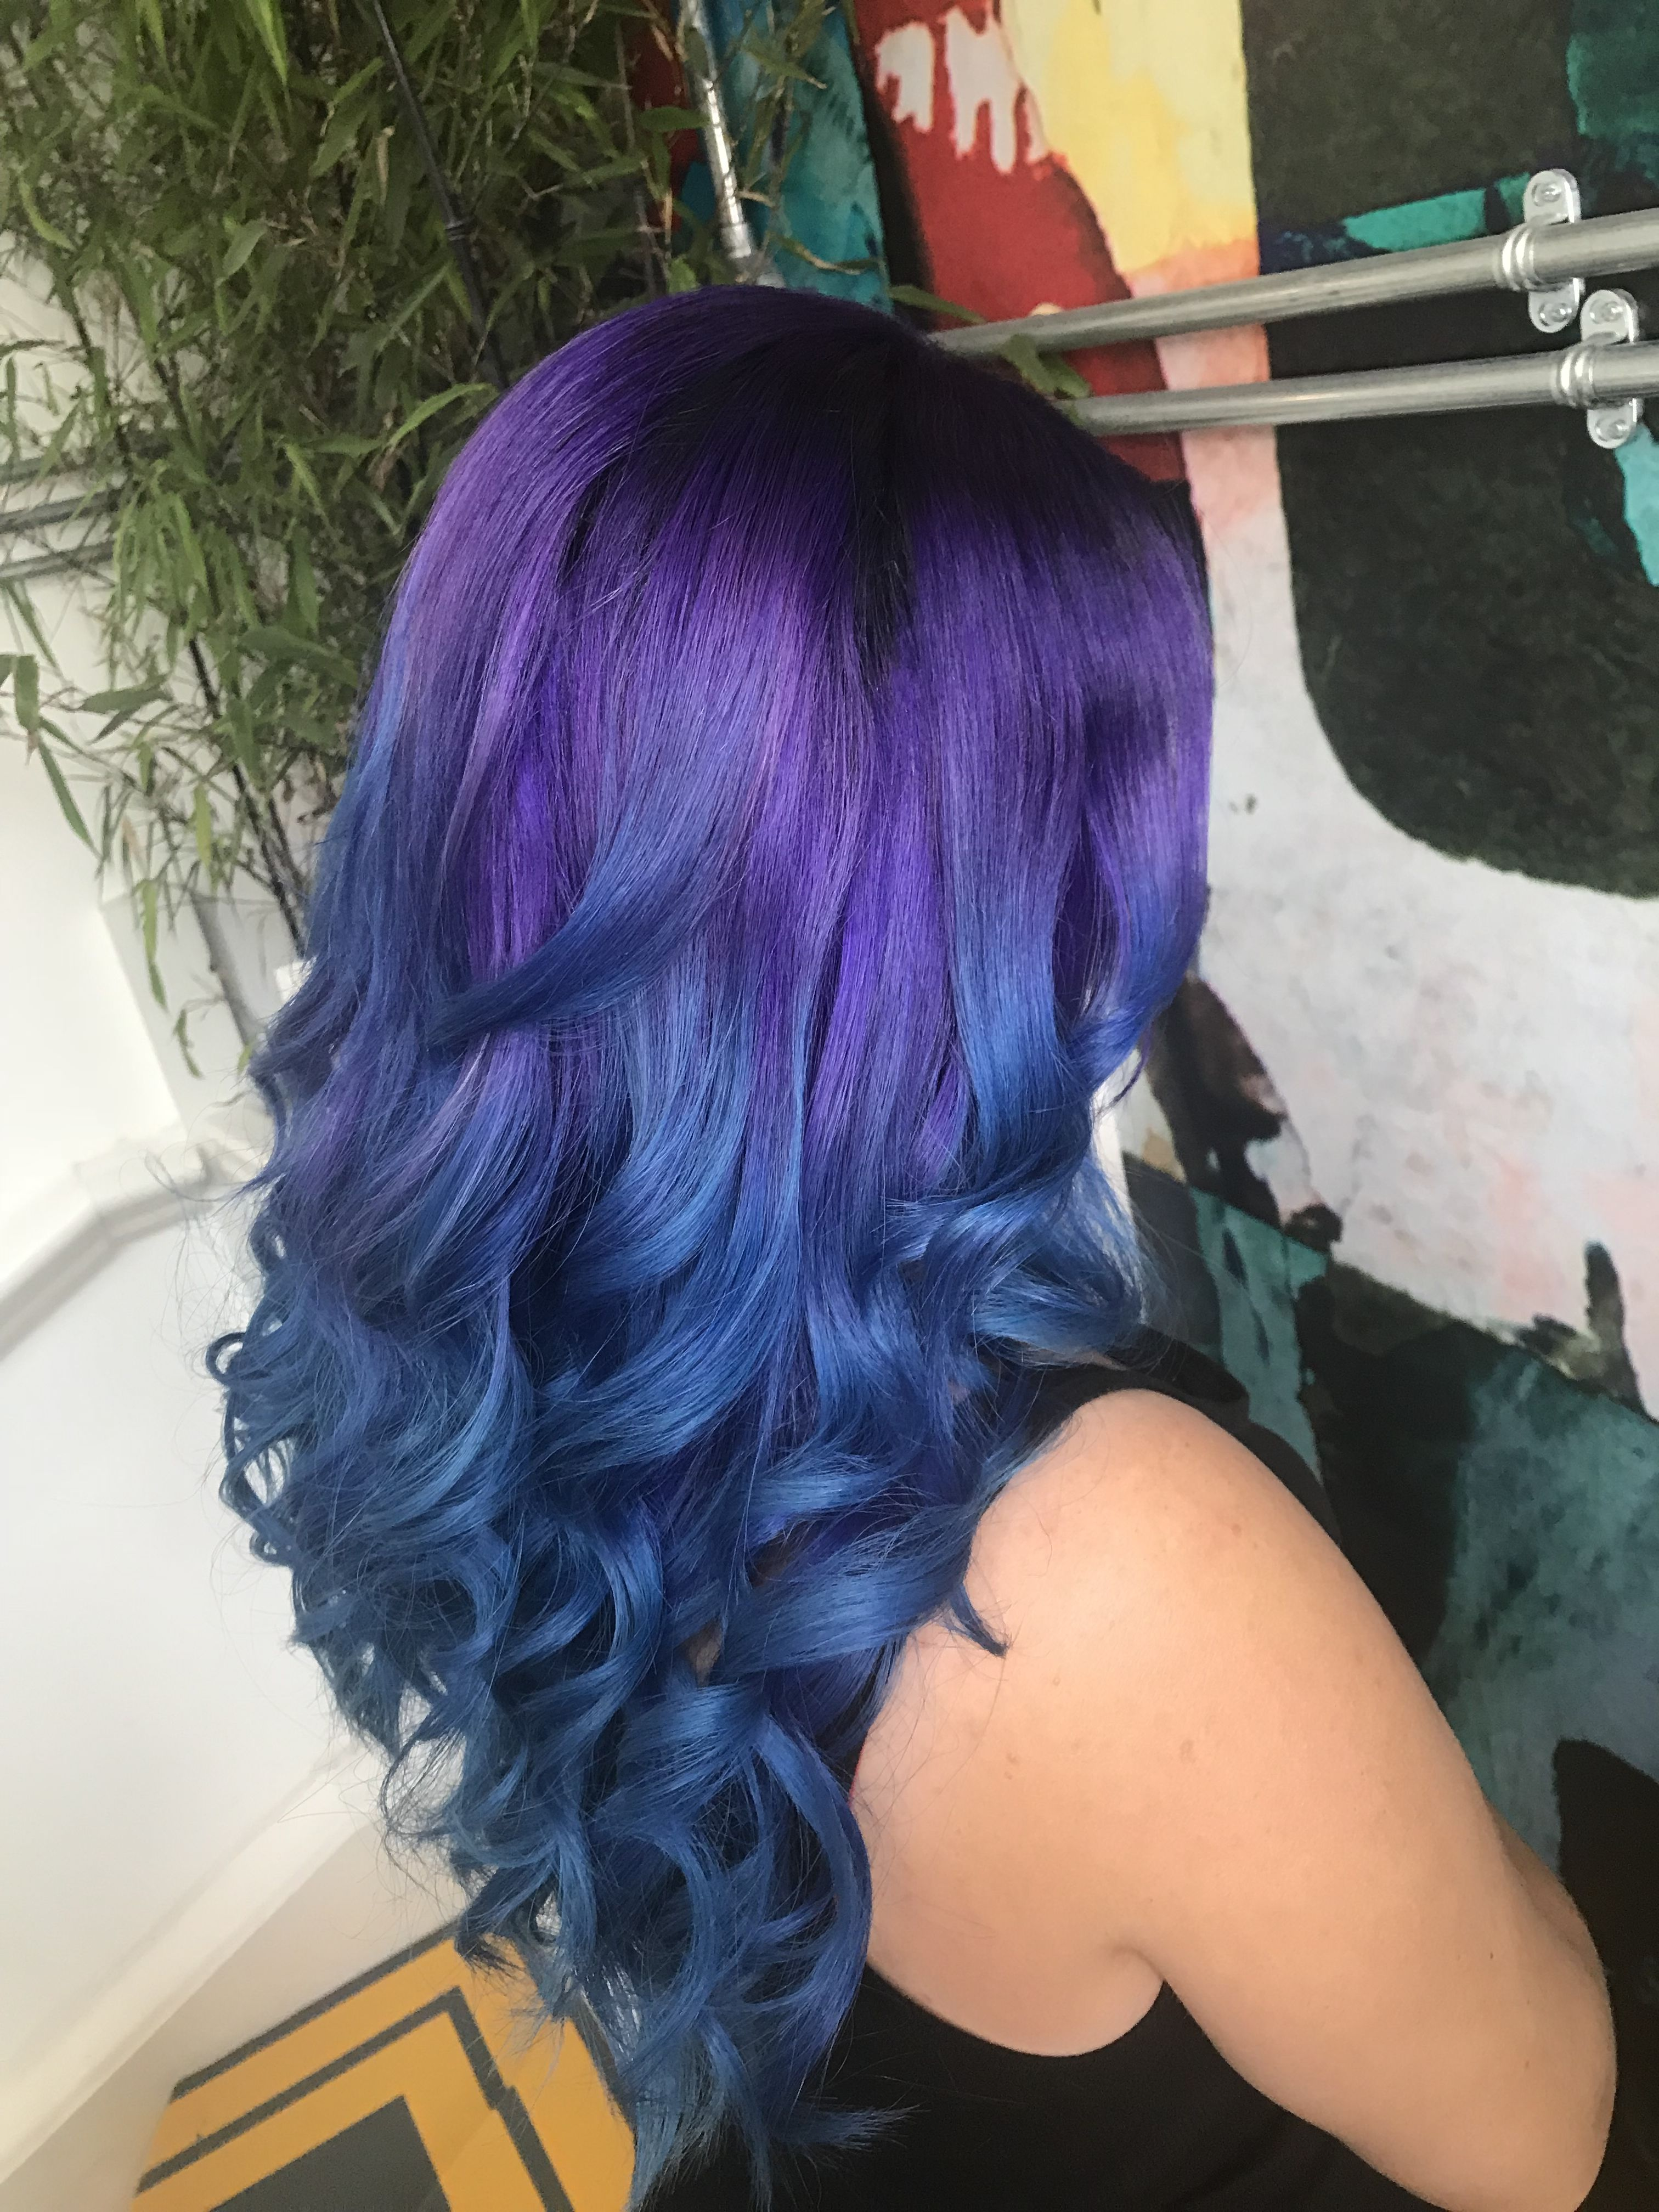 Pin by angela levesque on hair we go in pinterest hair